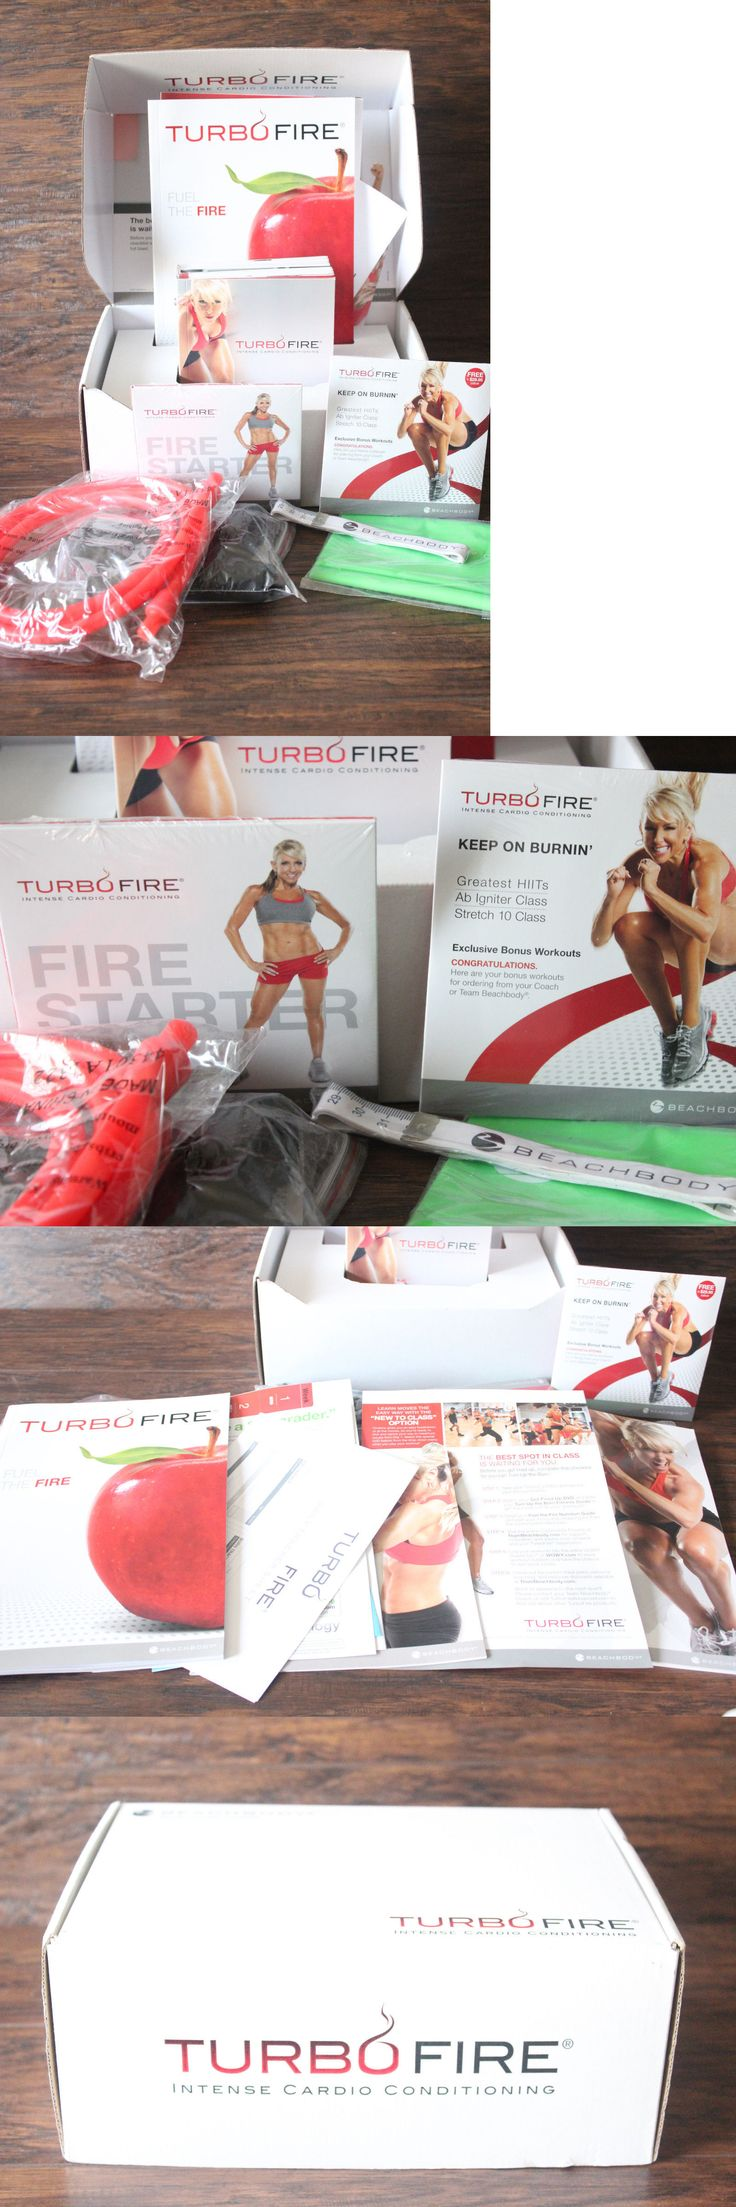 Fitness DVDs 109130: New Beachbody Turbo Fire Intense Cardio Conditioning Dvd Set + Keep On Burnin -> BUY IT NOW ONLY: $79.99 on eBay!